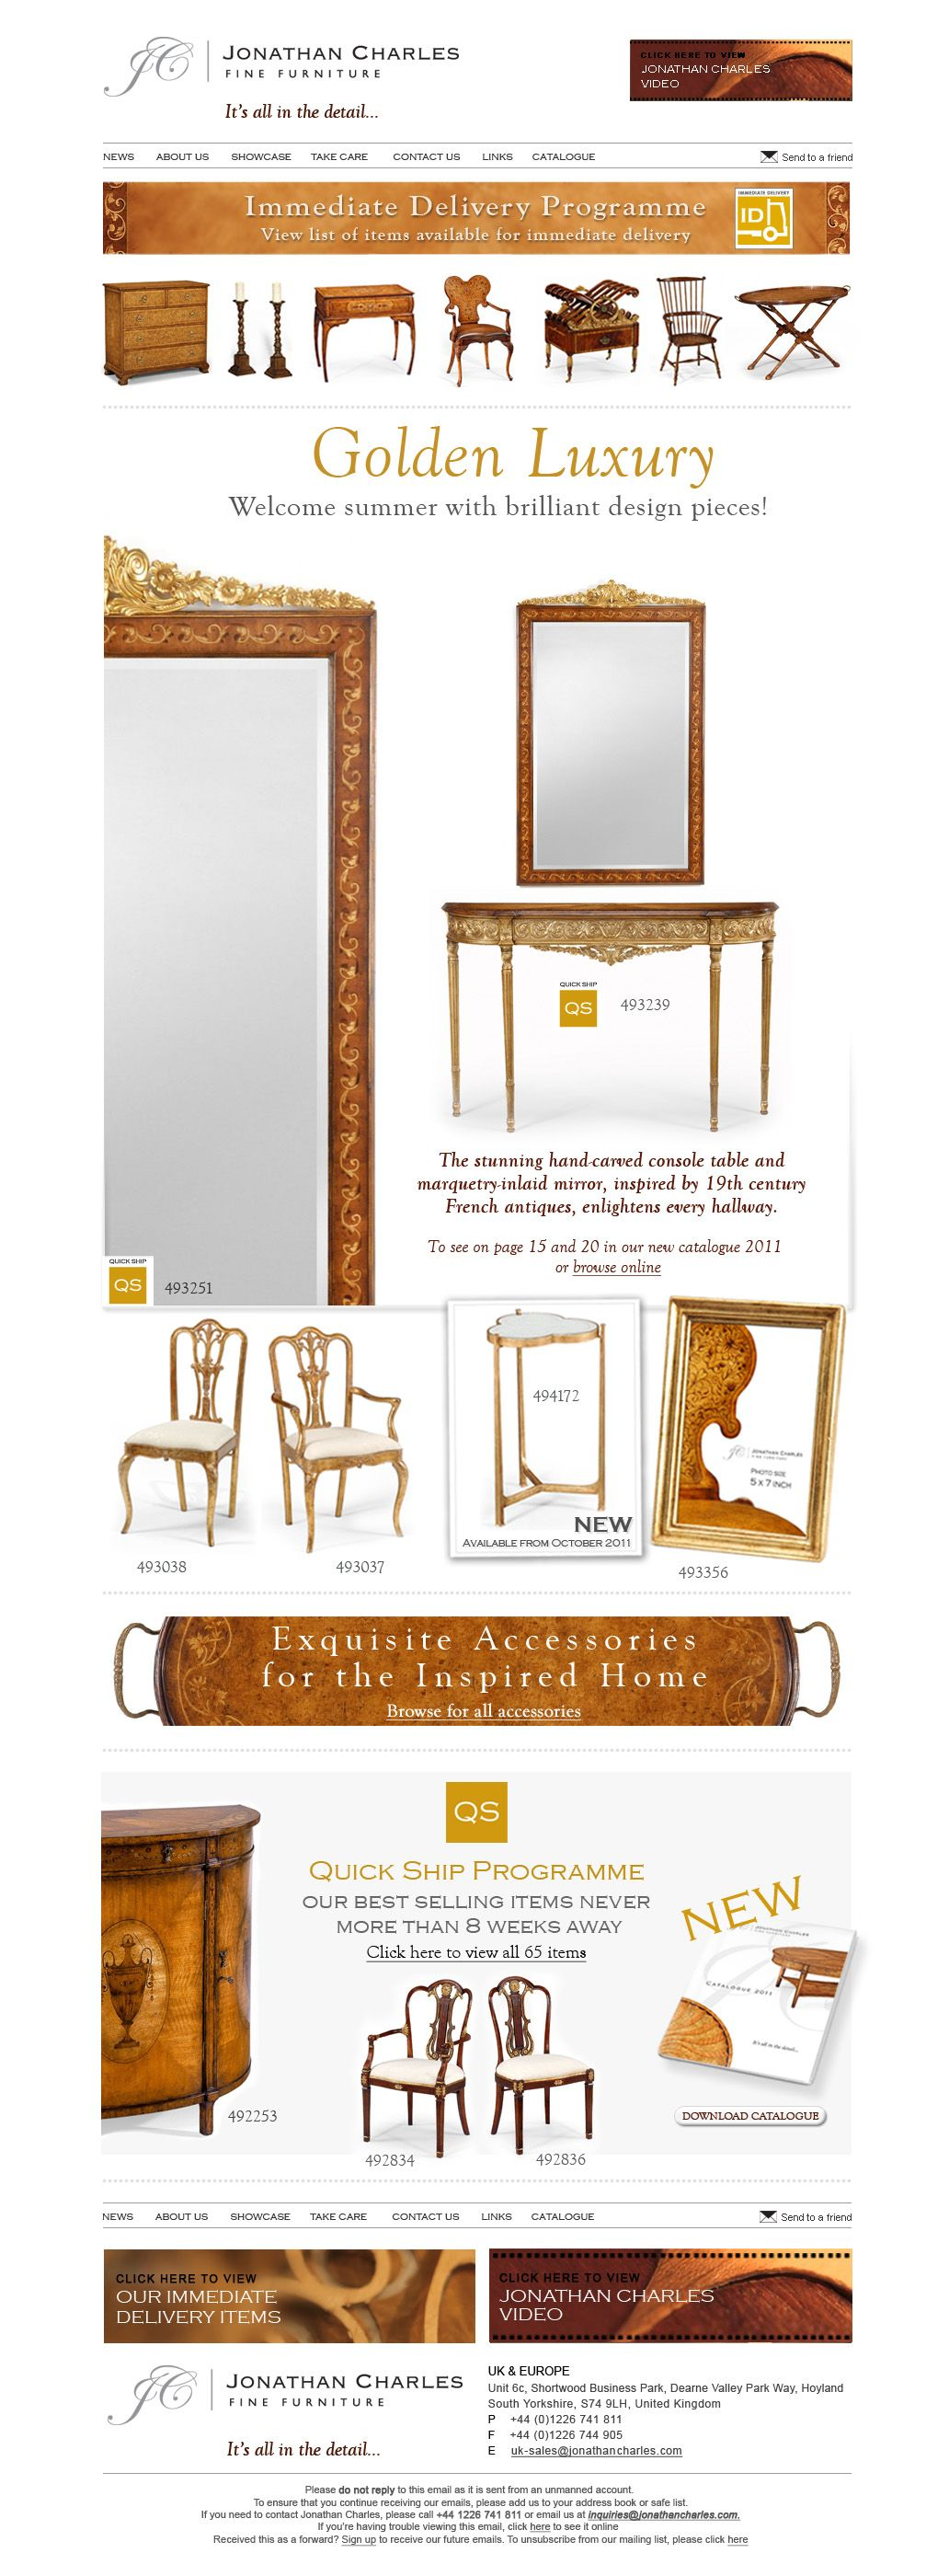 Jonathan Charles Fine Furniture   Golden Luxury... Welcome Summer With  Brilliant Design Pieces